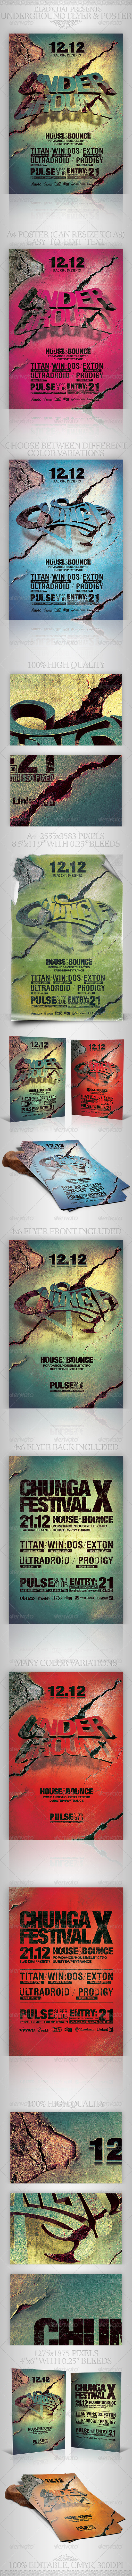 Underground Electro House Flyer & Poster Template - Events Flyers